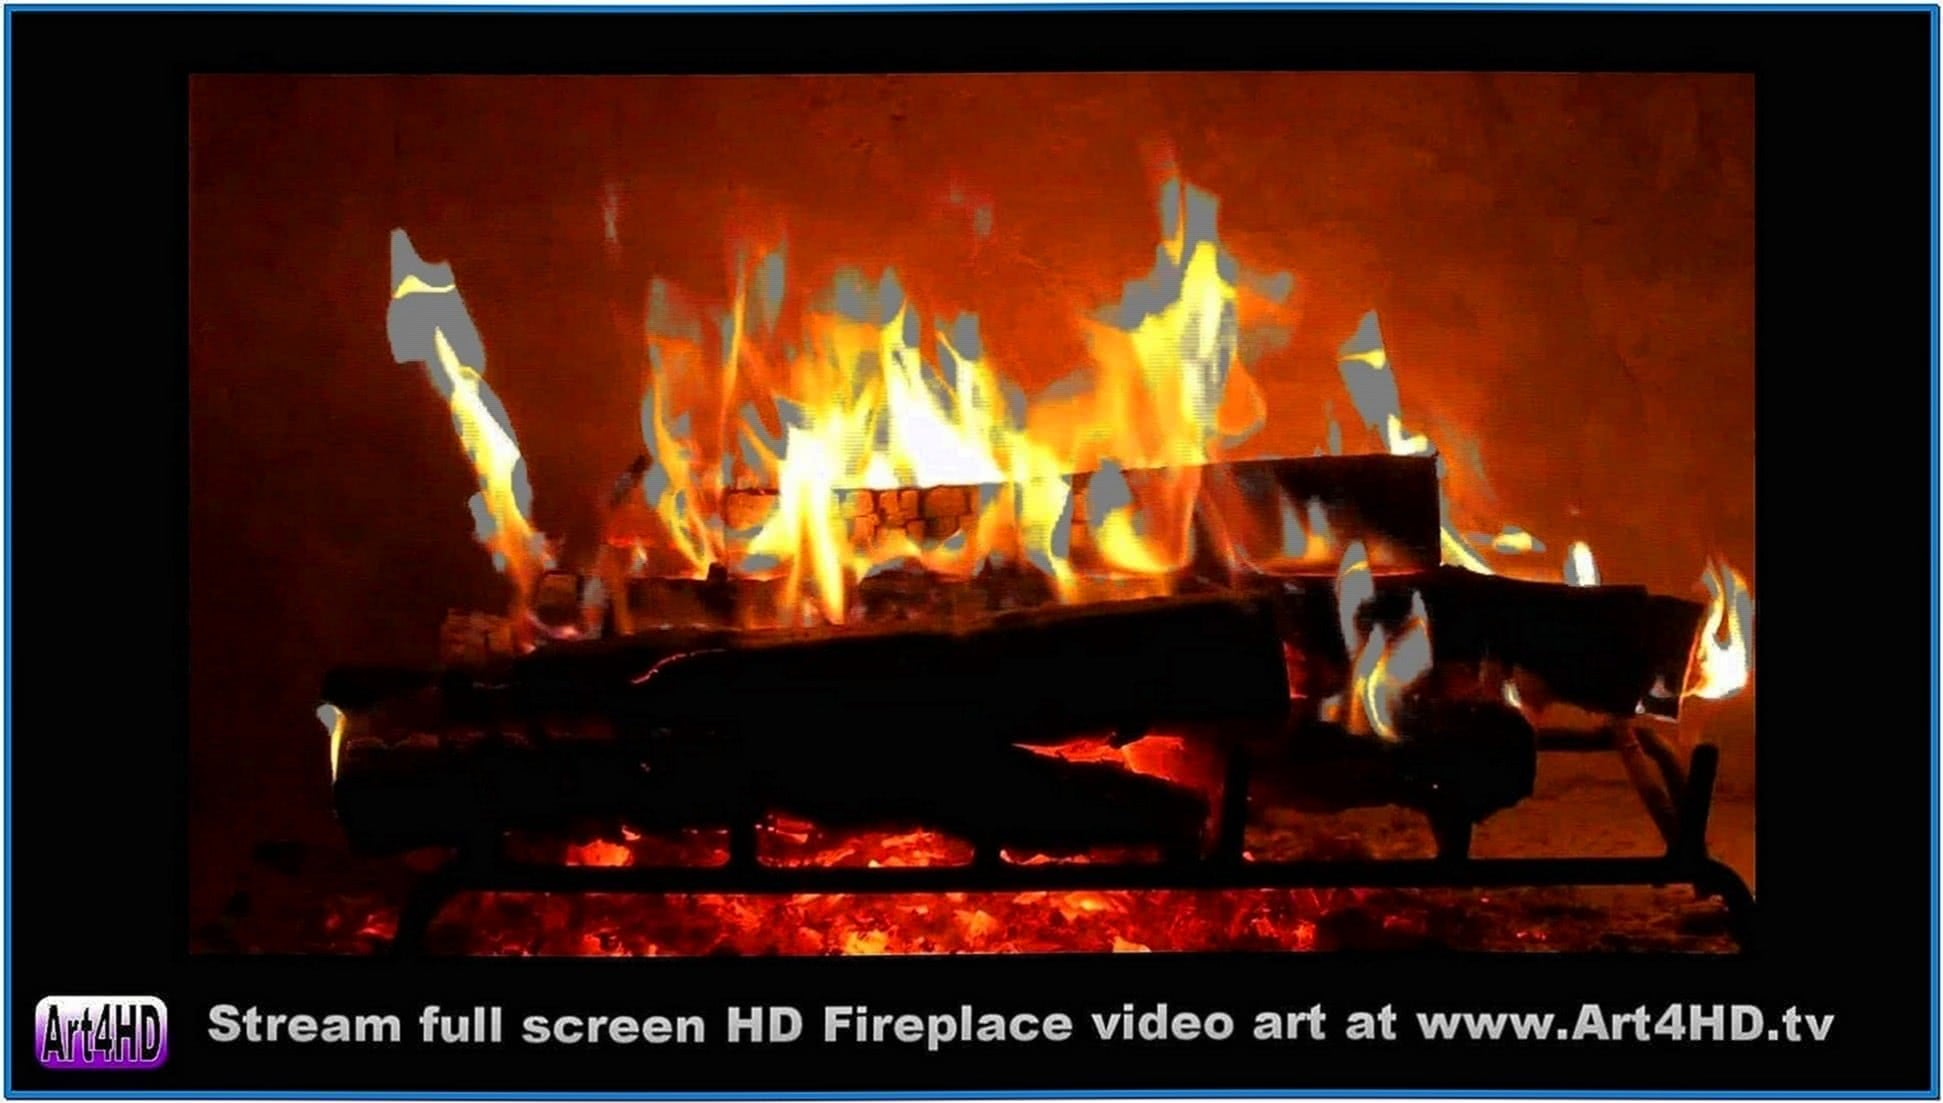 HDTV Fireplace Screensaver